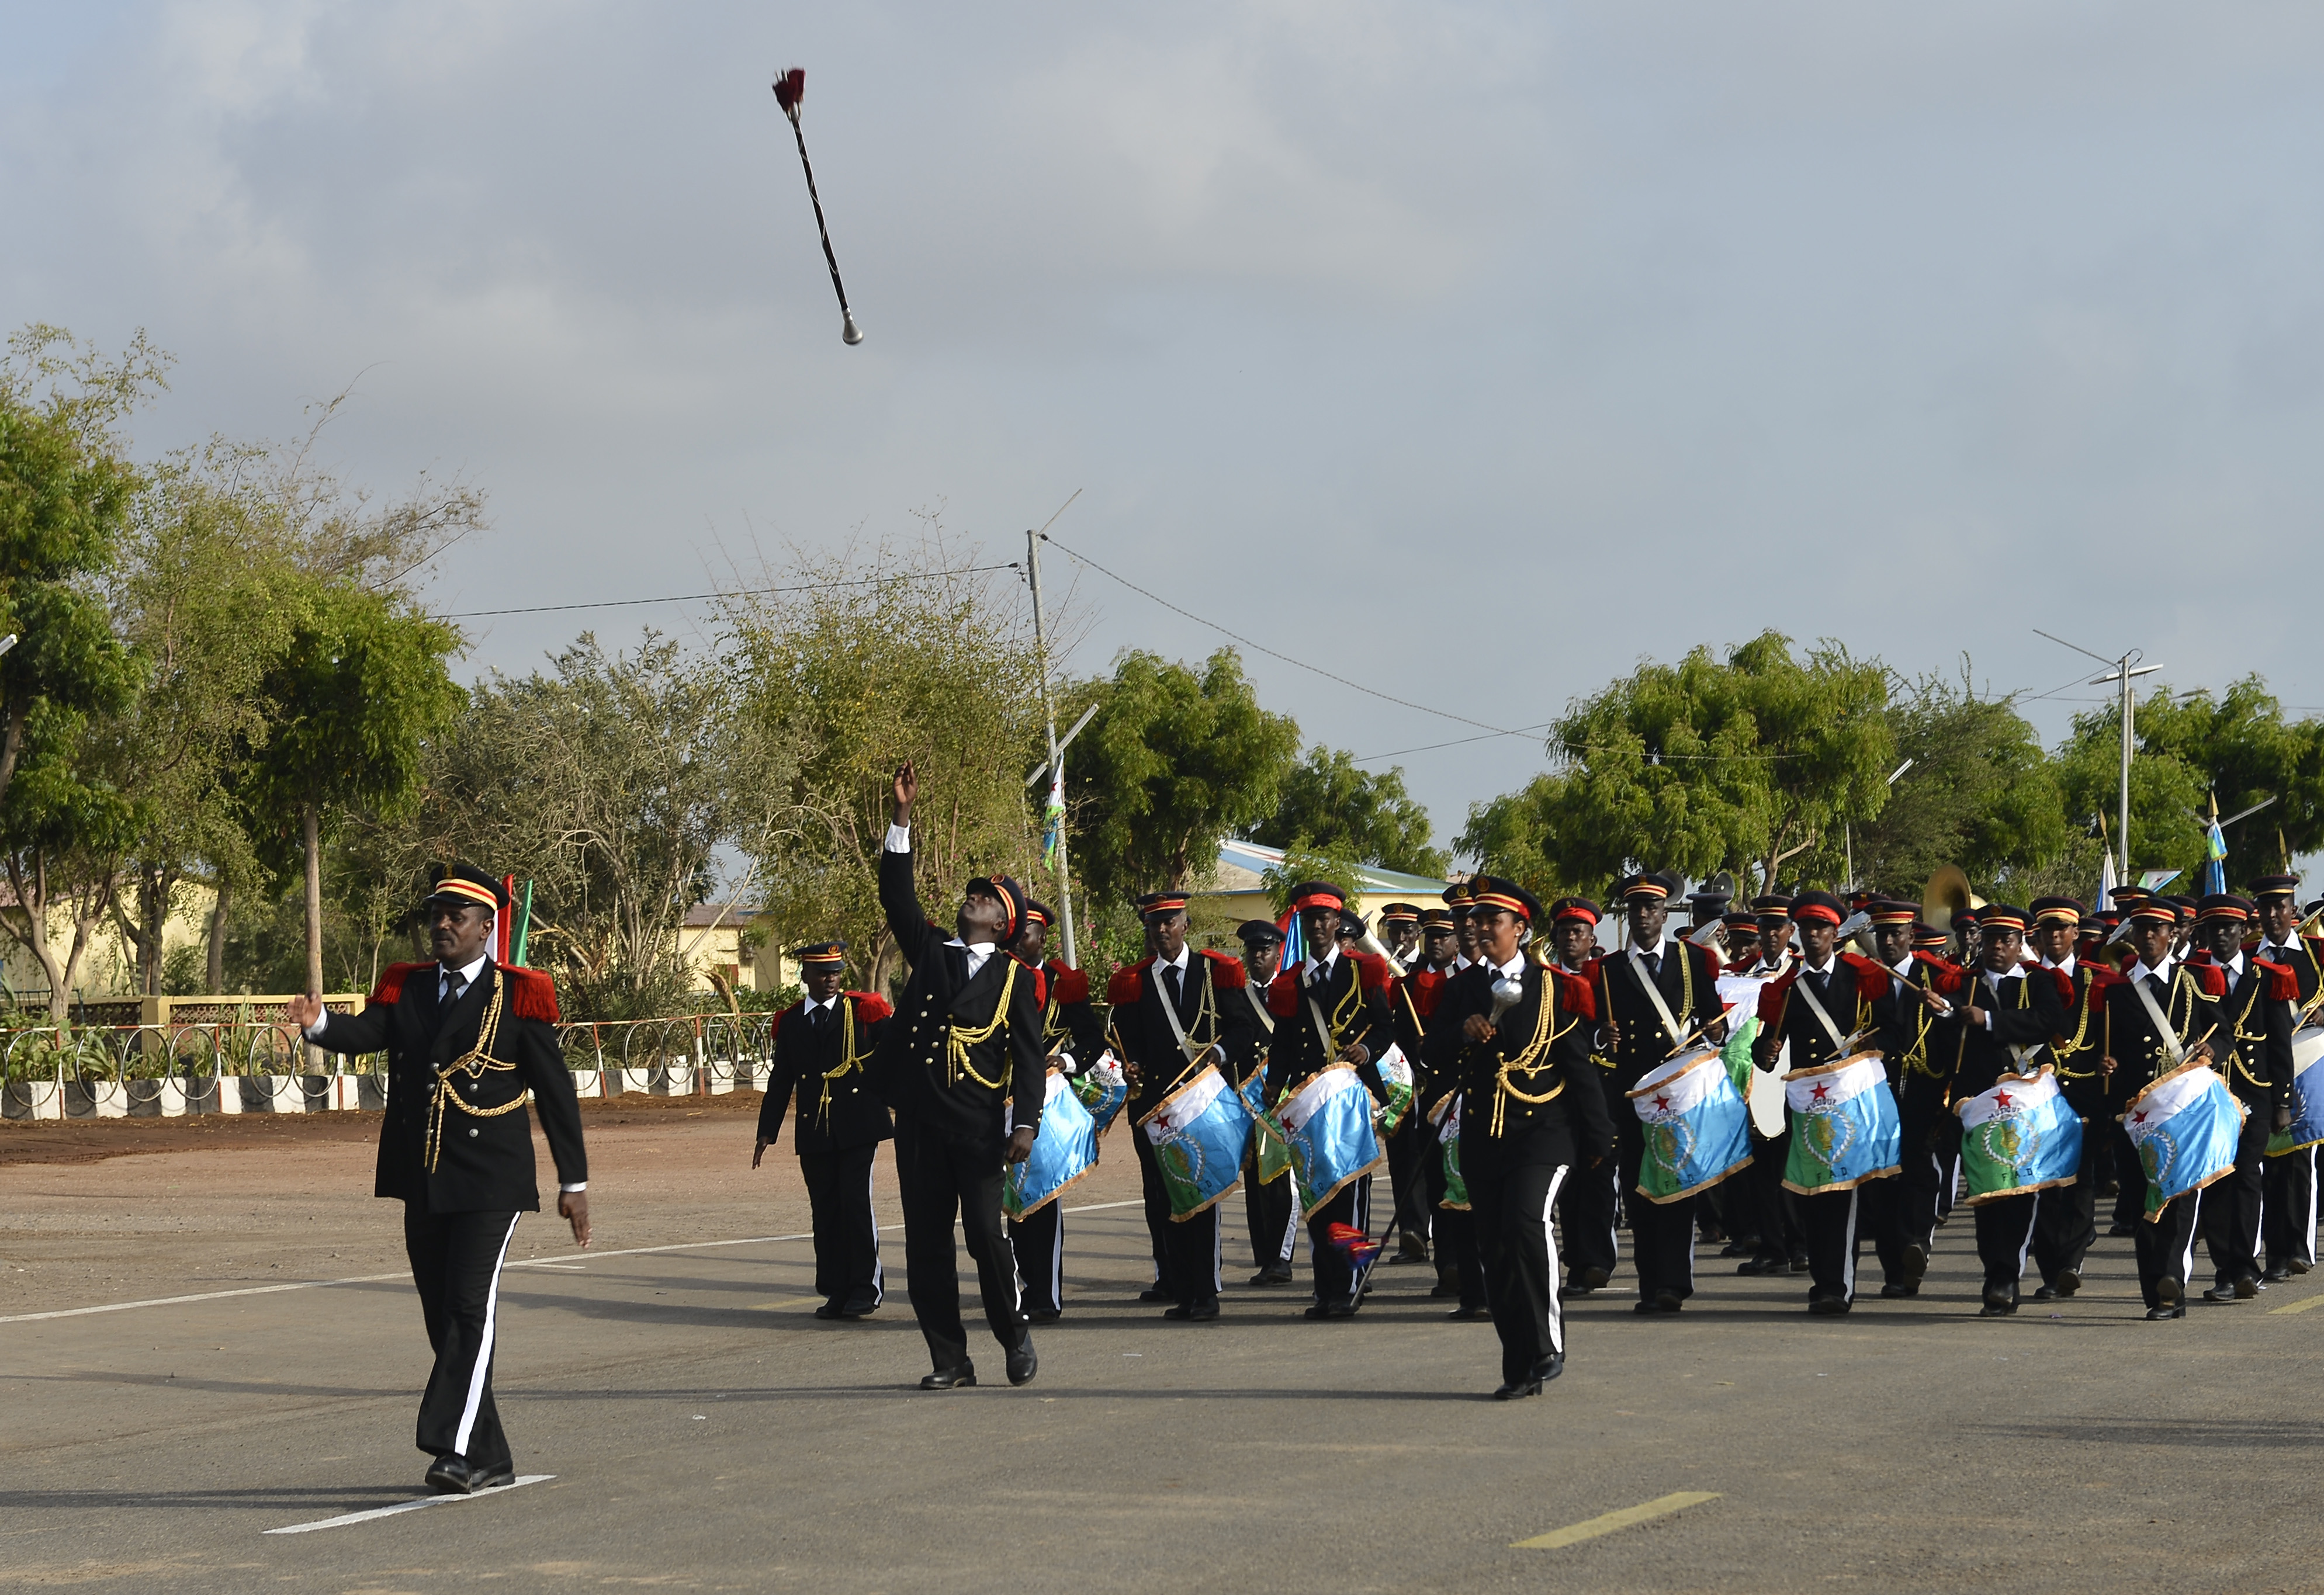 The Djiboutian Armed Forces (FAD) Marching Band performs during the FAD's 38th anniversary celebration June 6, 2015 at Camp Cheik Osman, Djibouti,. The FAD invited leadership from their partner nations in honor of their independence day. (U.S. Air Force photo by Senior Airman Nesha Humes)